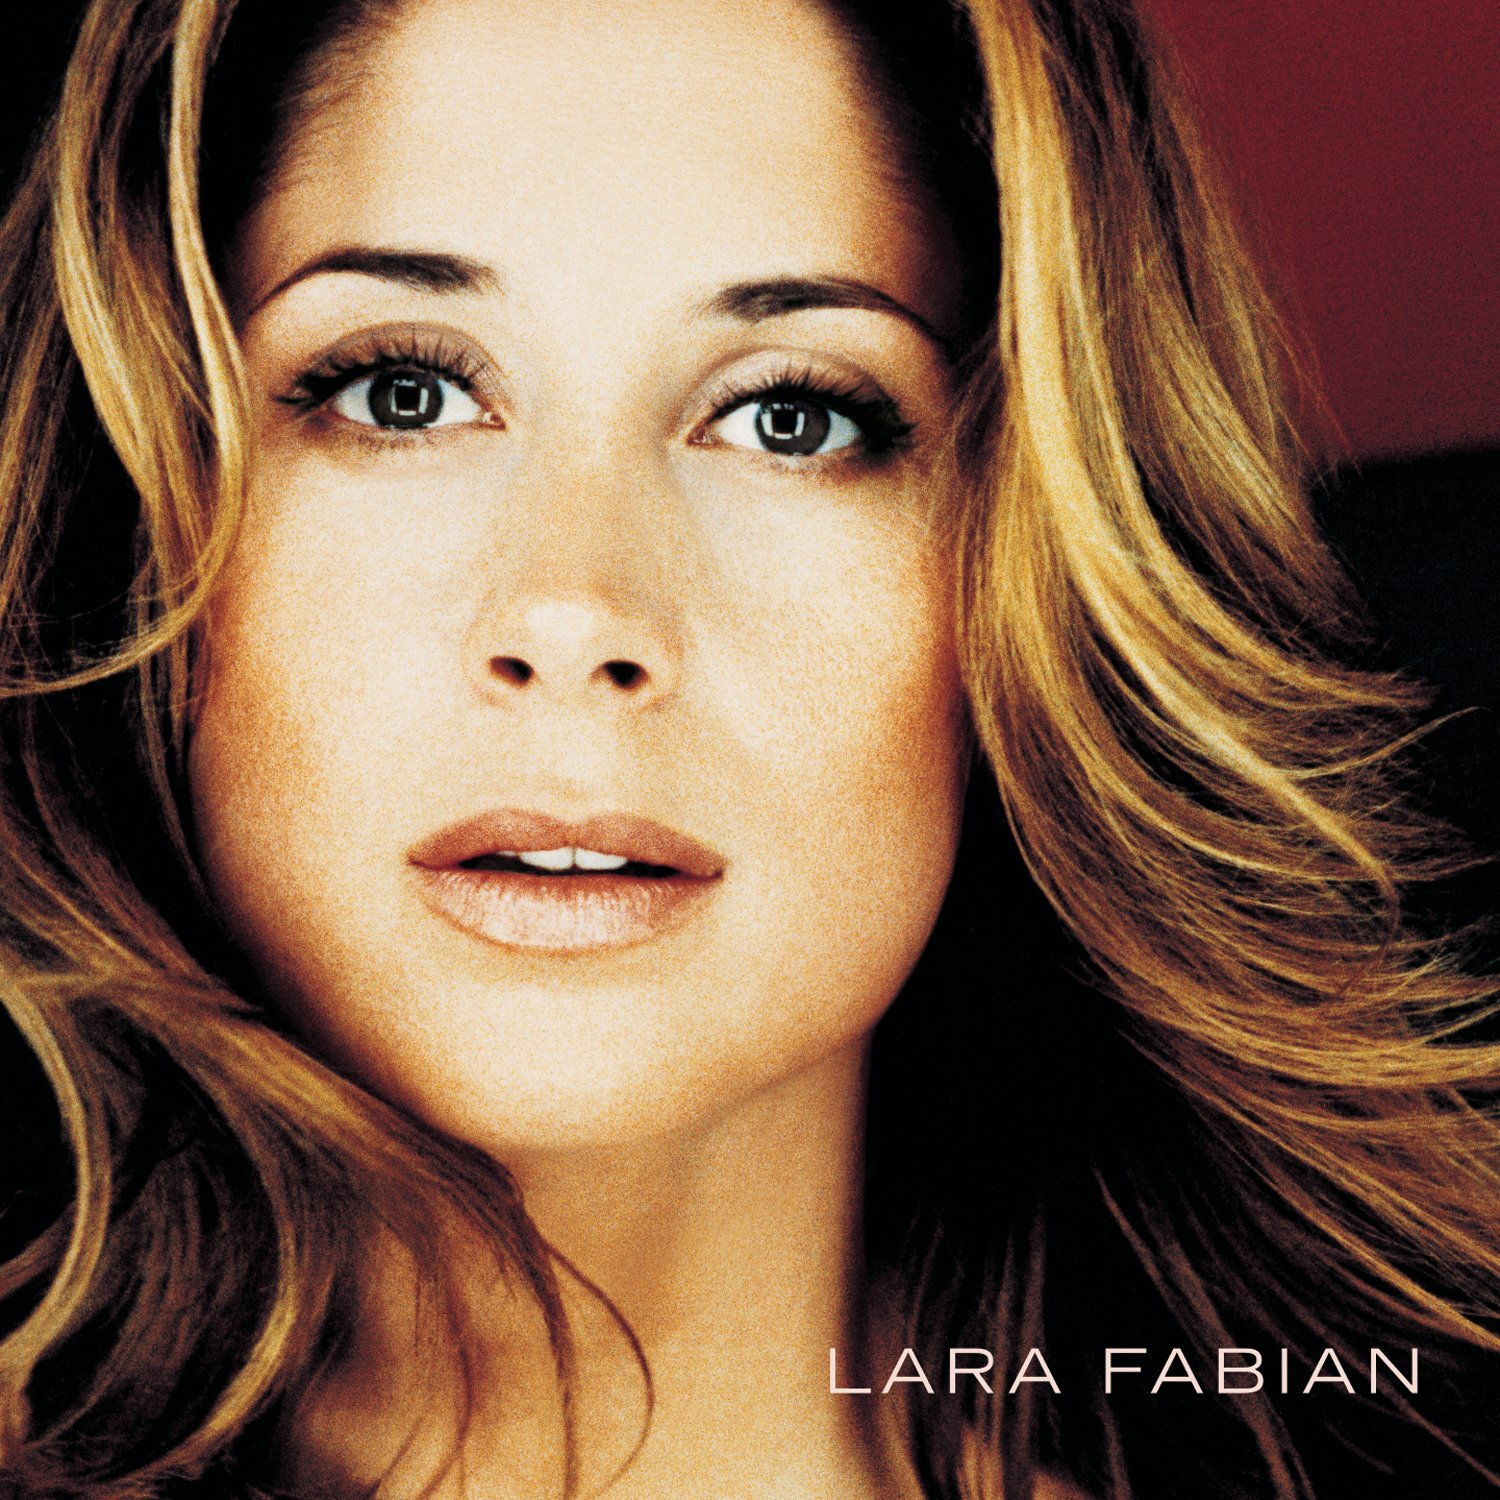 Lara Fabian - Lara Fabian - Amazon.com Music